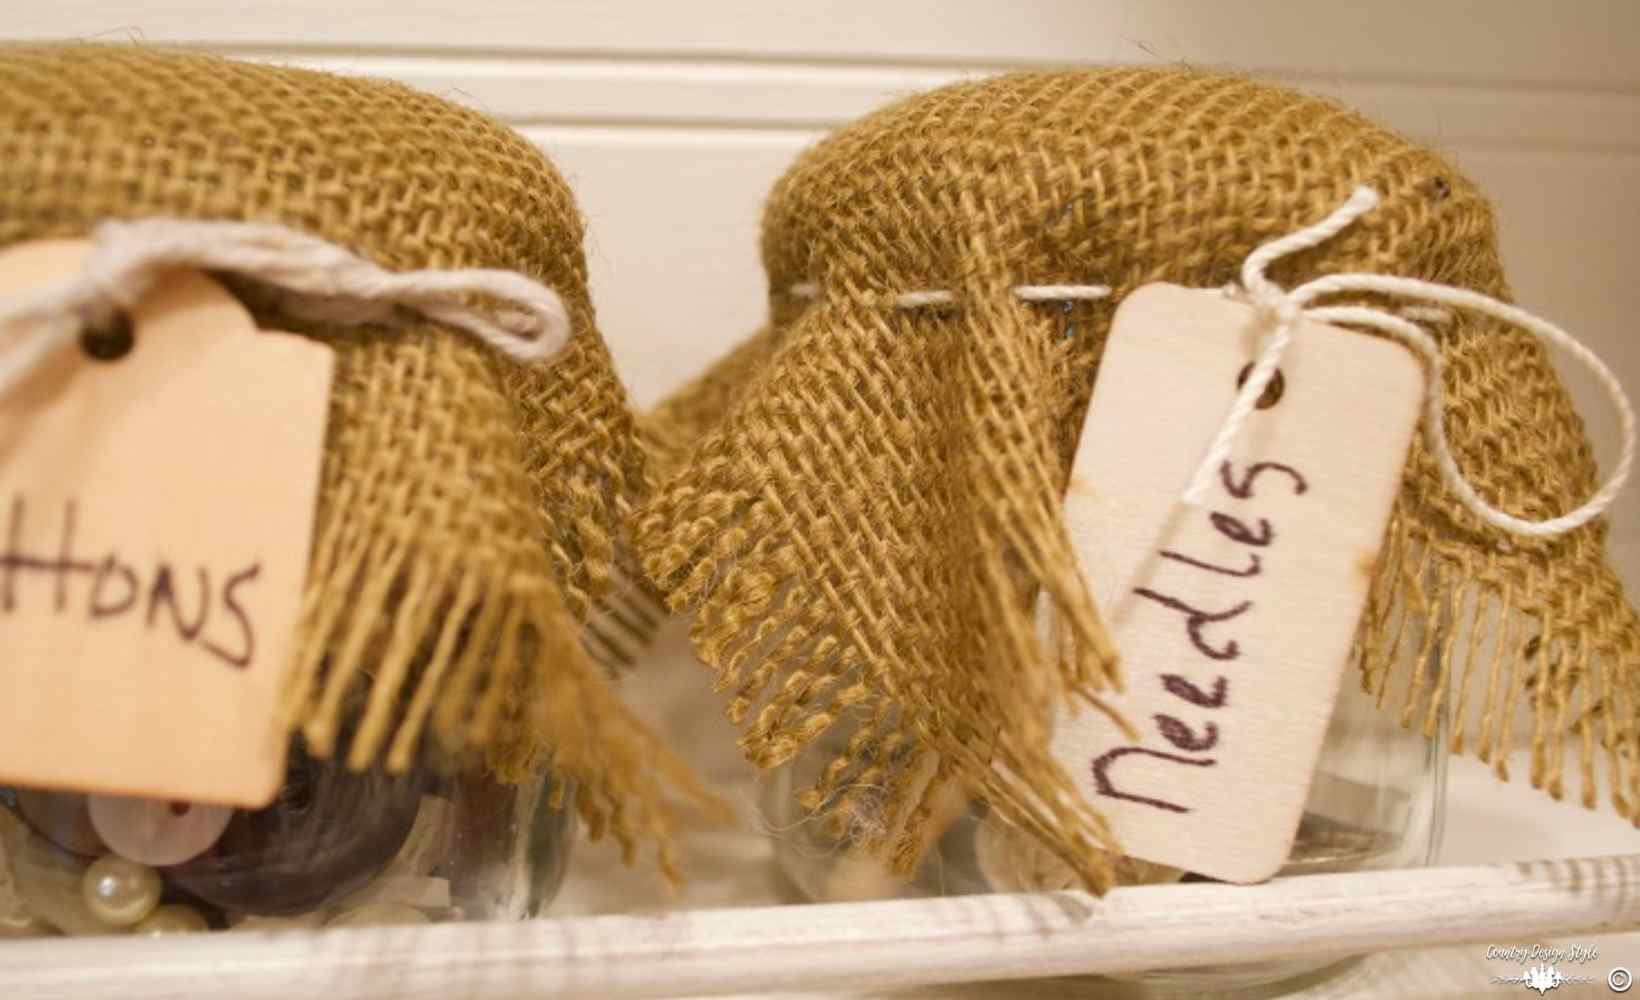 Craft Containers Organizing small items Feature Photo   Country Design Style   countrydesignstyle.com